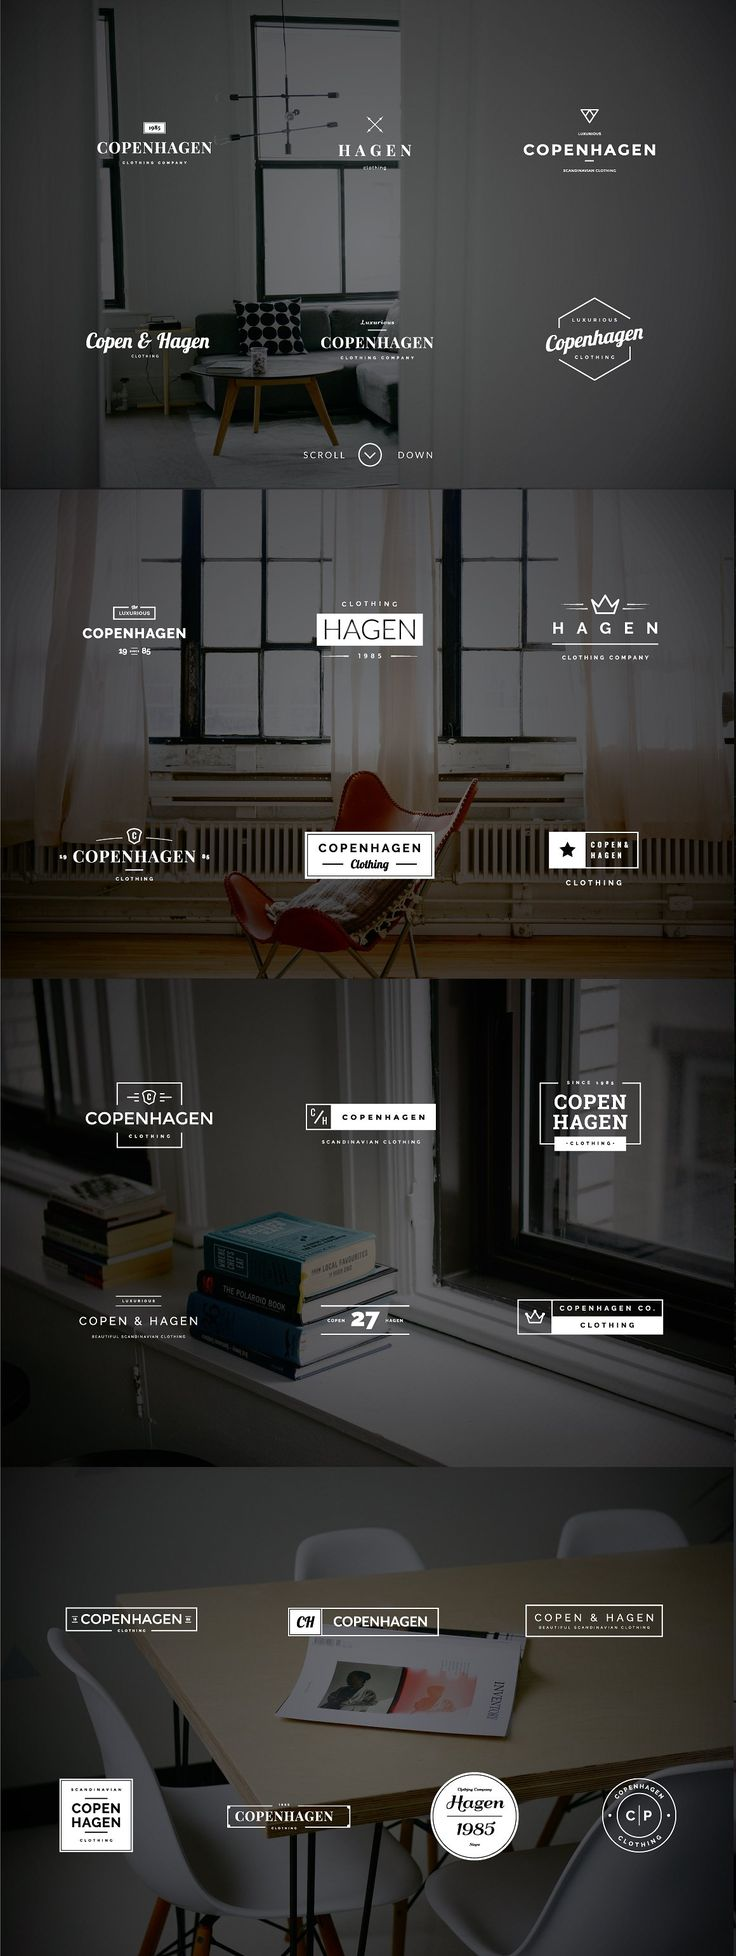 30 Best Logo Images On Pinterest Vintage Logos Templates And Circuit Board Wall Clock By Monogramit Copenhagen 25 Minimalistic